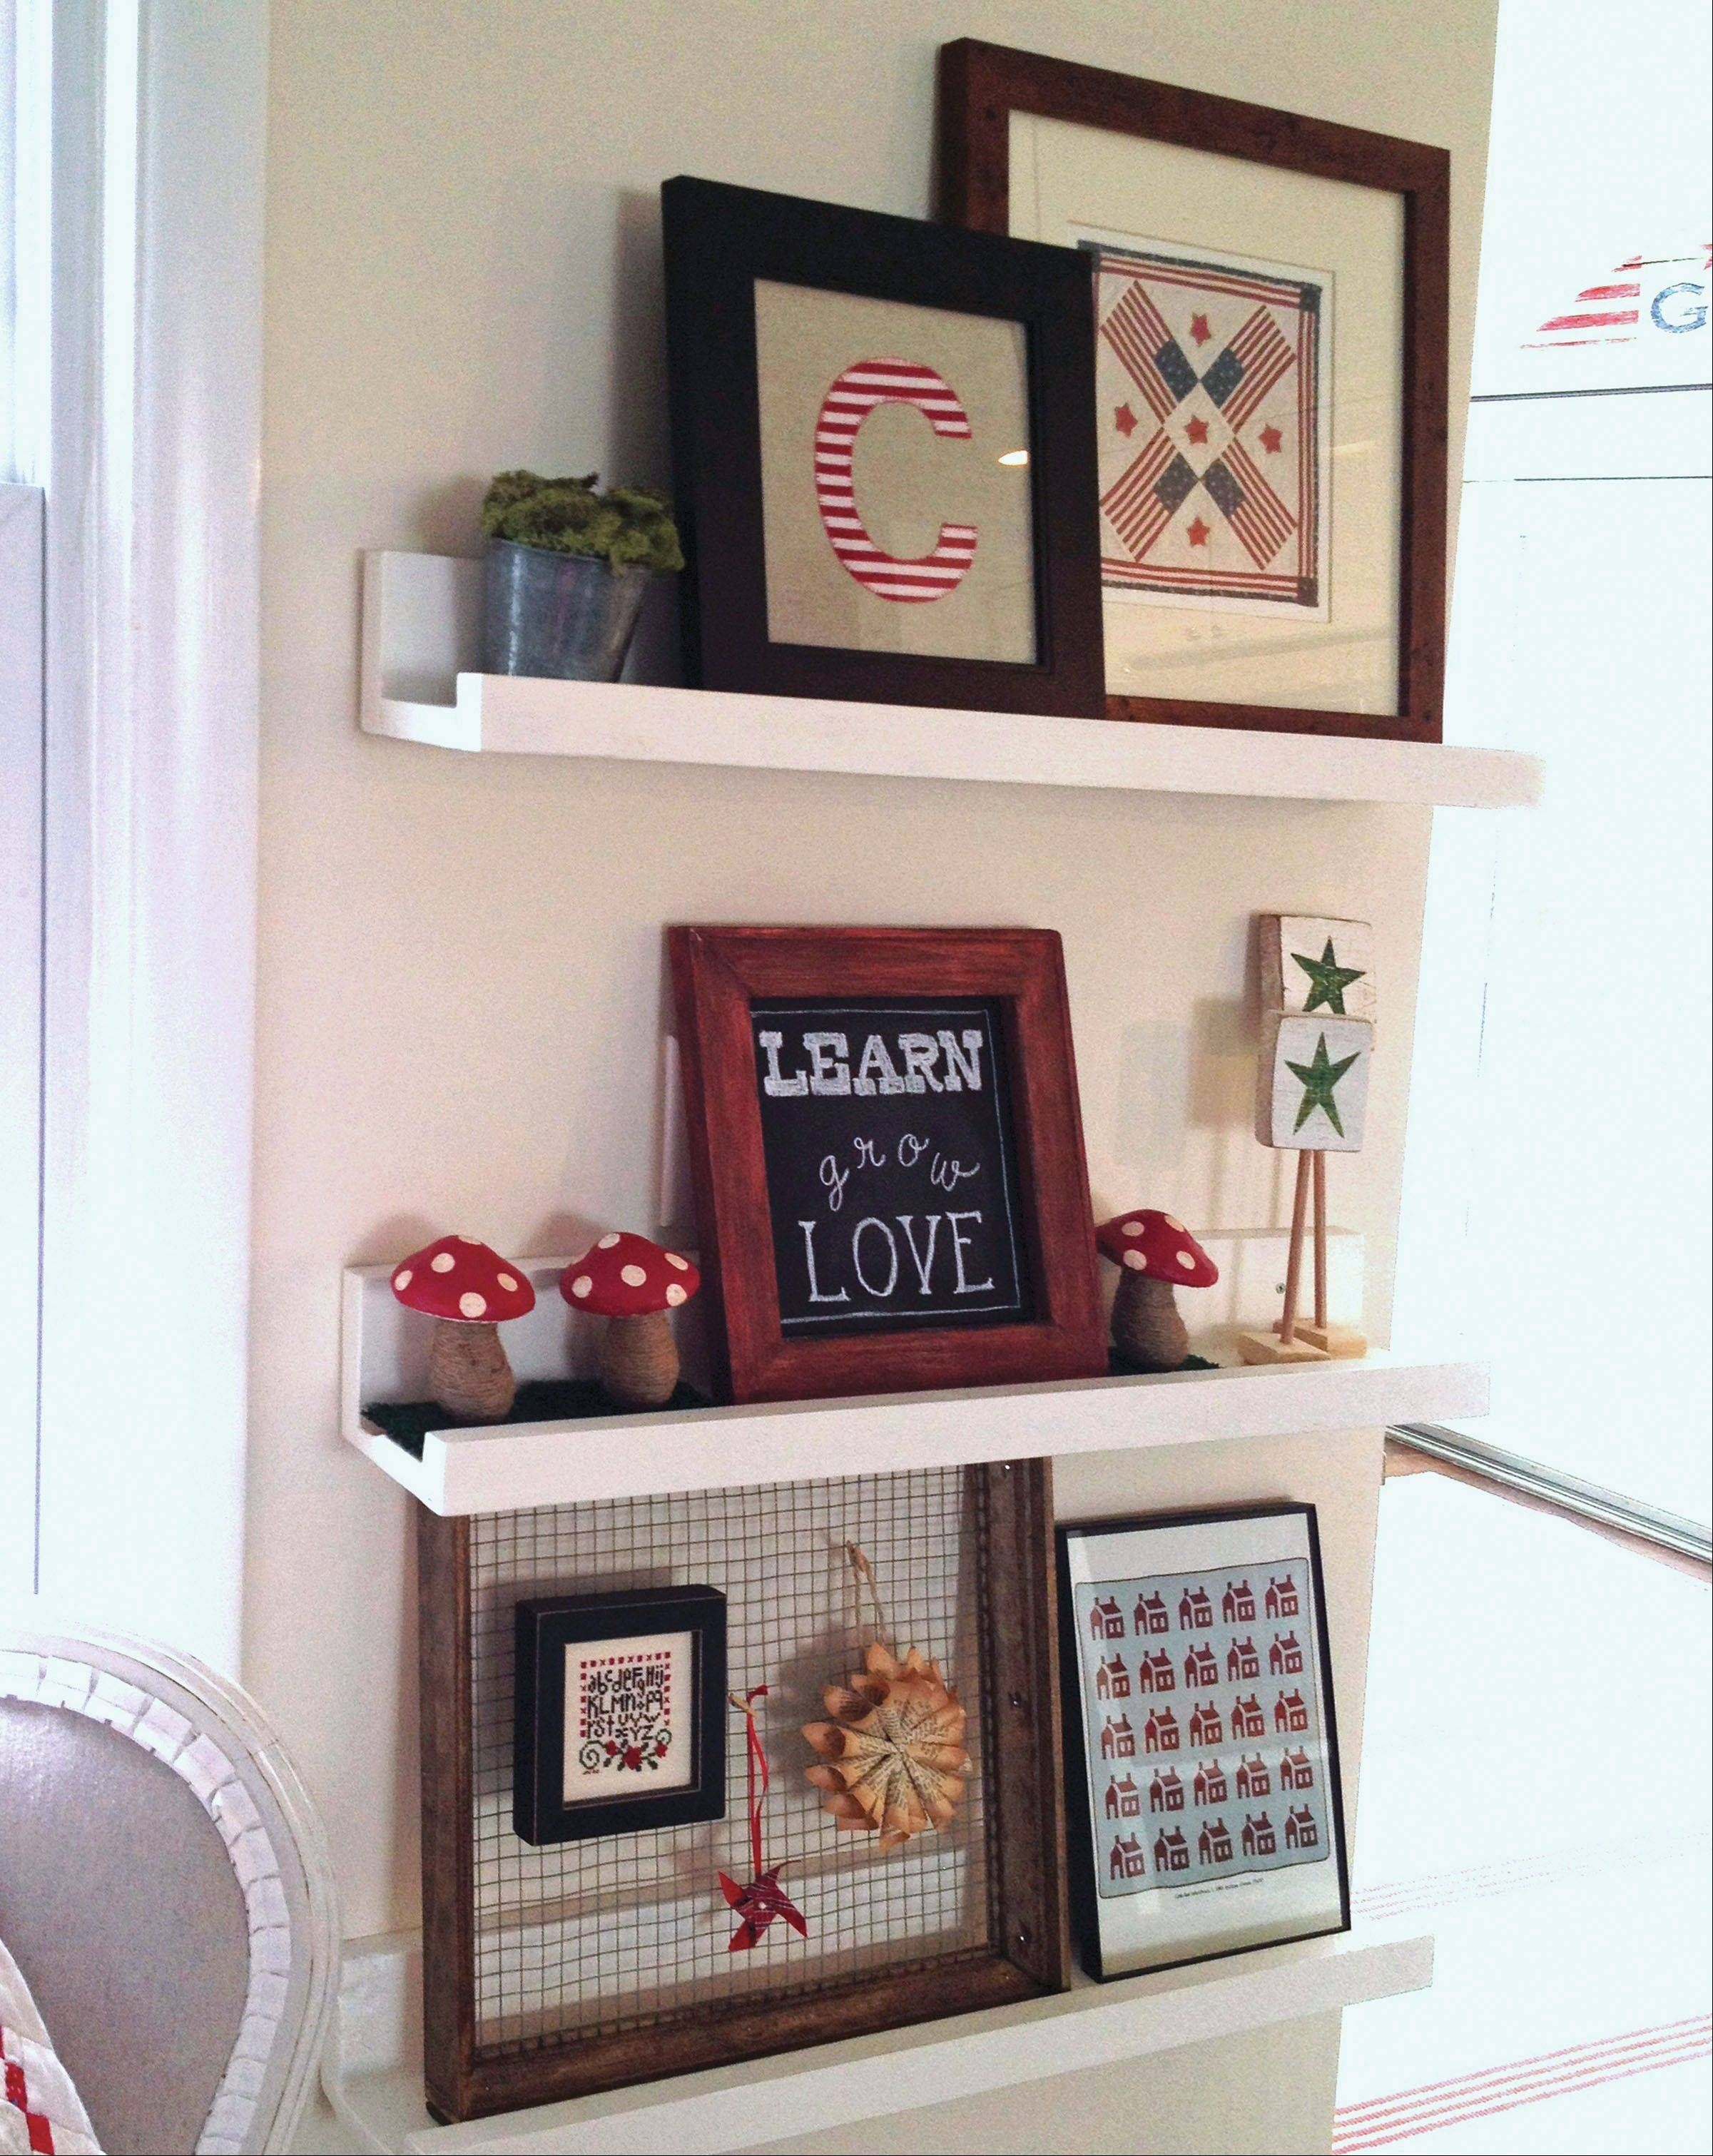 If you're new to woodworking, start on smaller projects, like a set of shelves or picture frames.